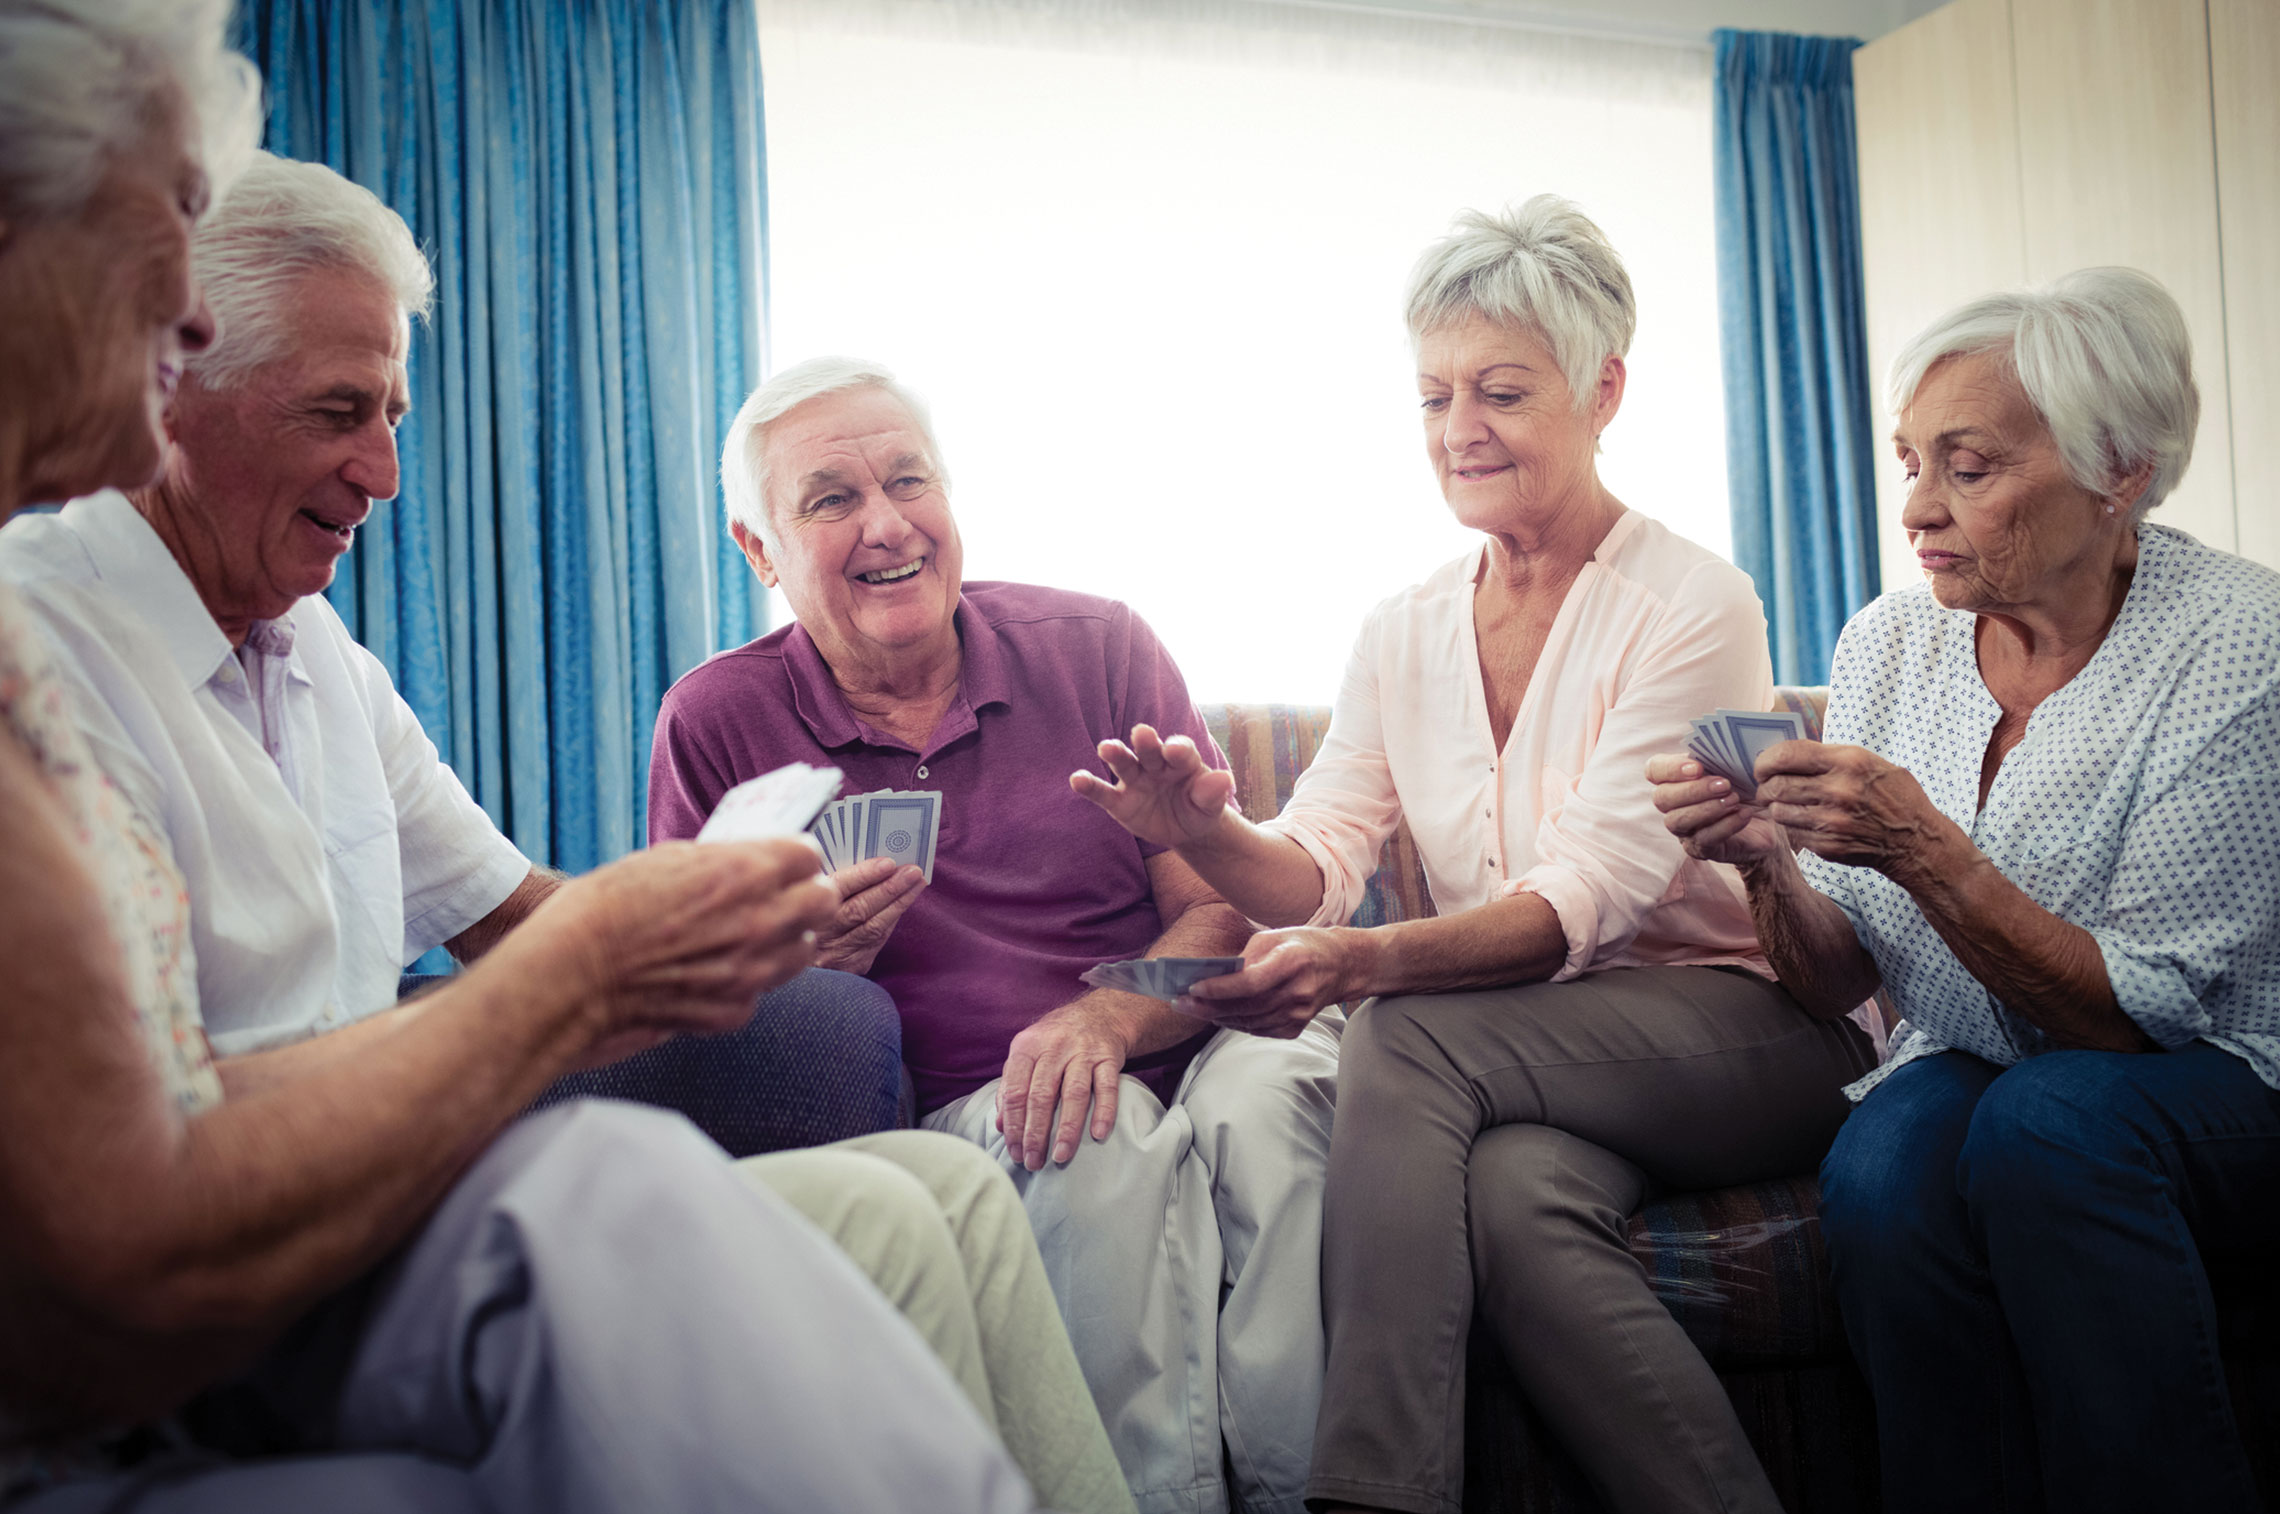 A Look at the Modern Senior Community